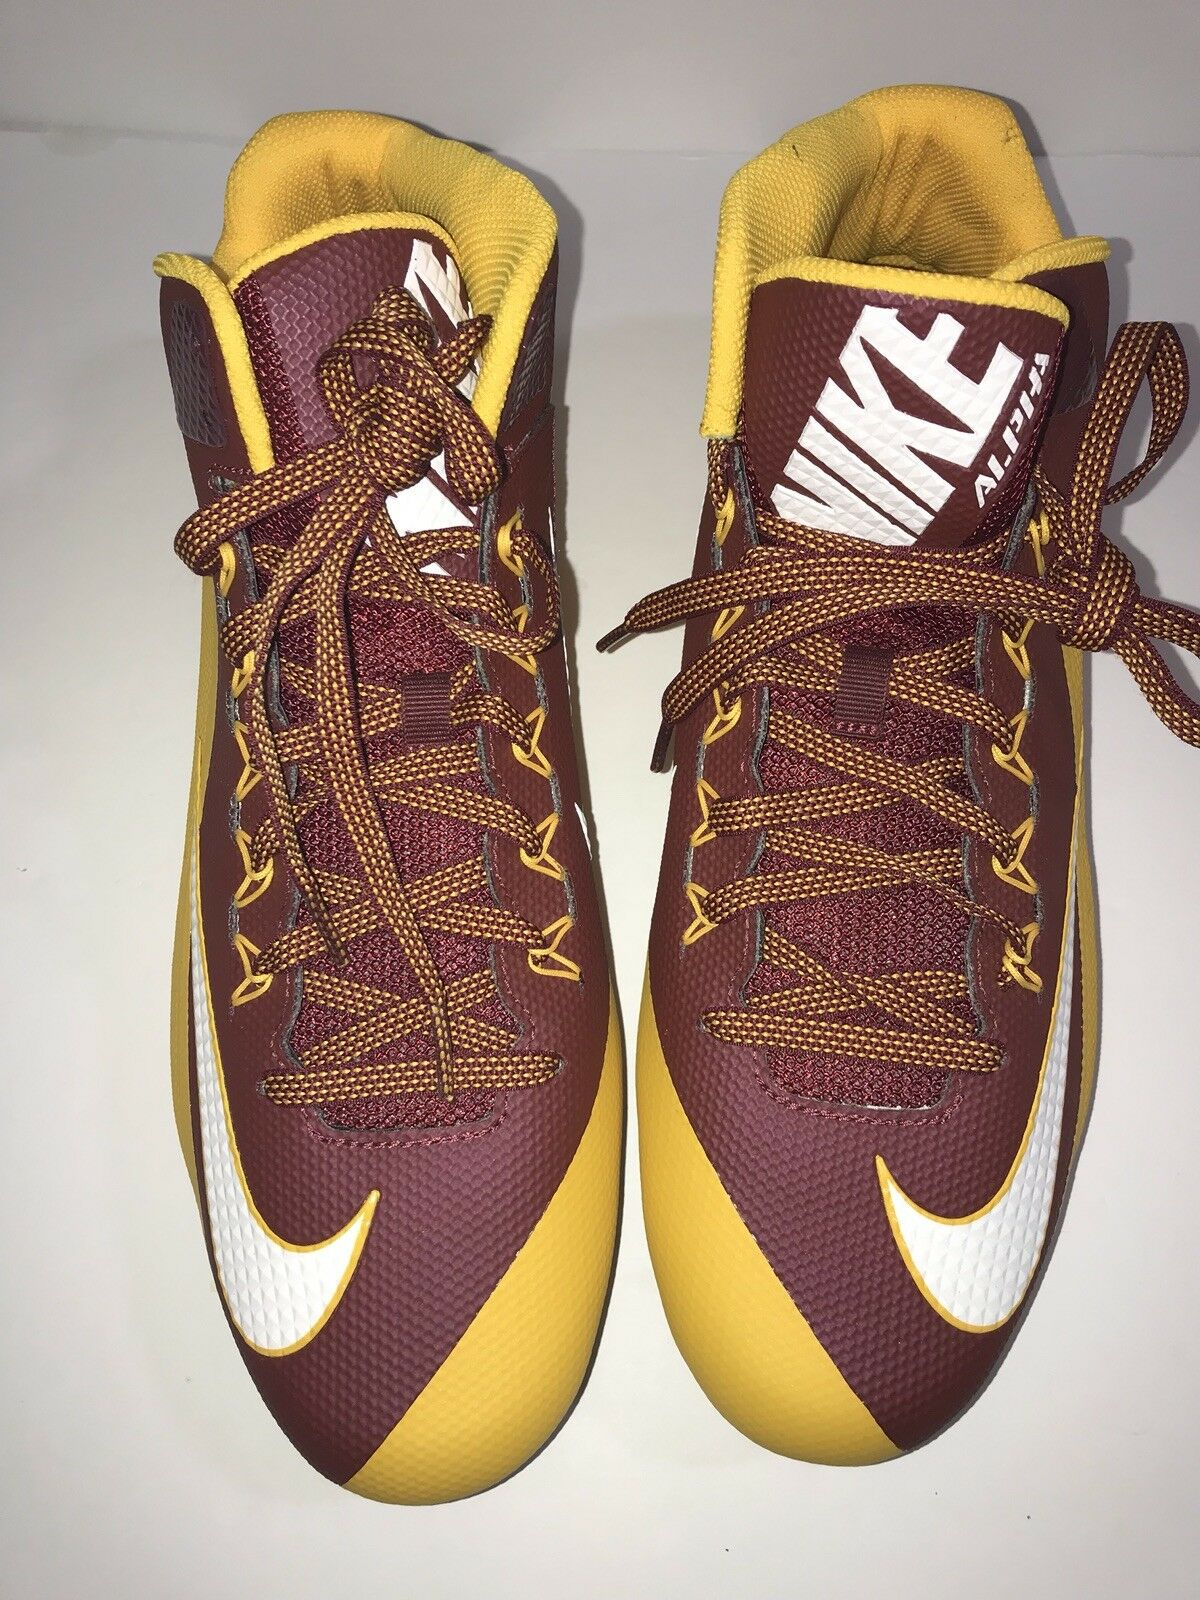 NIKE ALPHA PRO 2 mid td football cleats maroon yellow men's size 15 pre owned